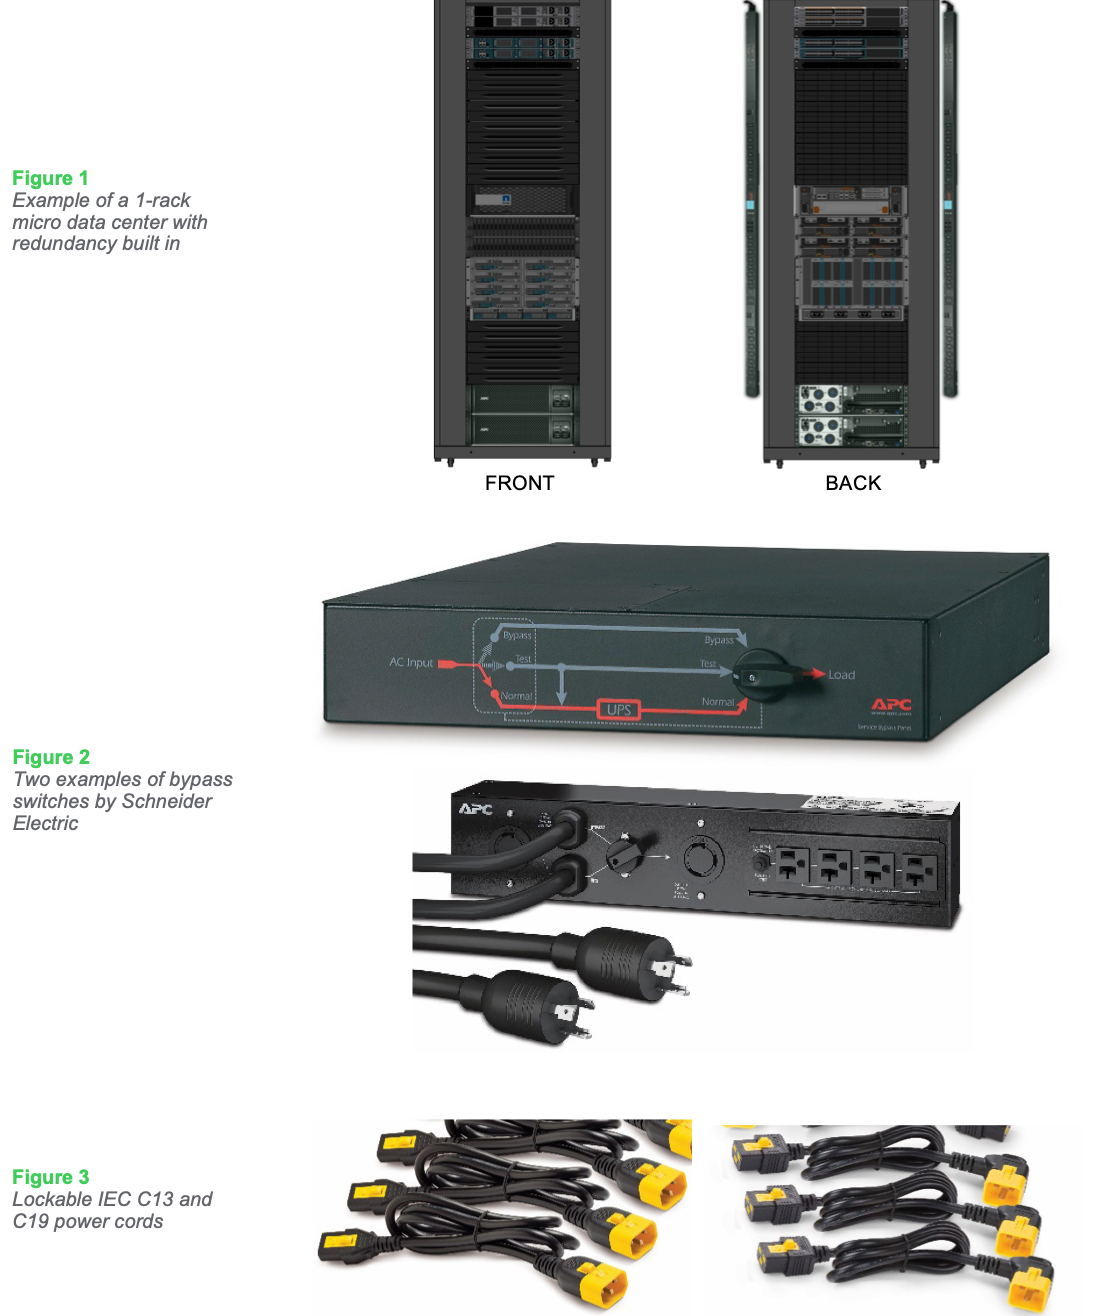 Figure 1 Example of a 1-rack micro data center with redundancy built in, Figure 2 Two examples of bypass switches by Schneider Electric, Figure 3 Lockable IEC C13 and C19 power cords